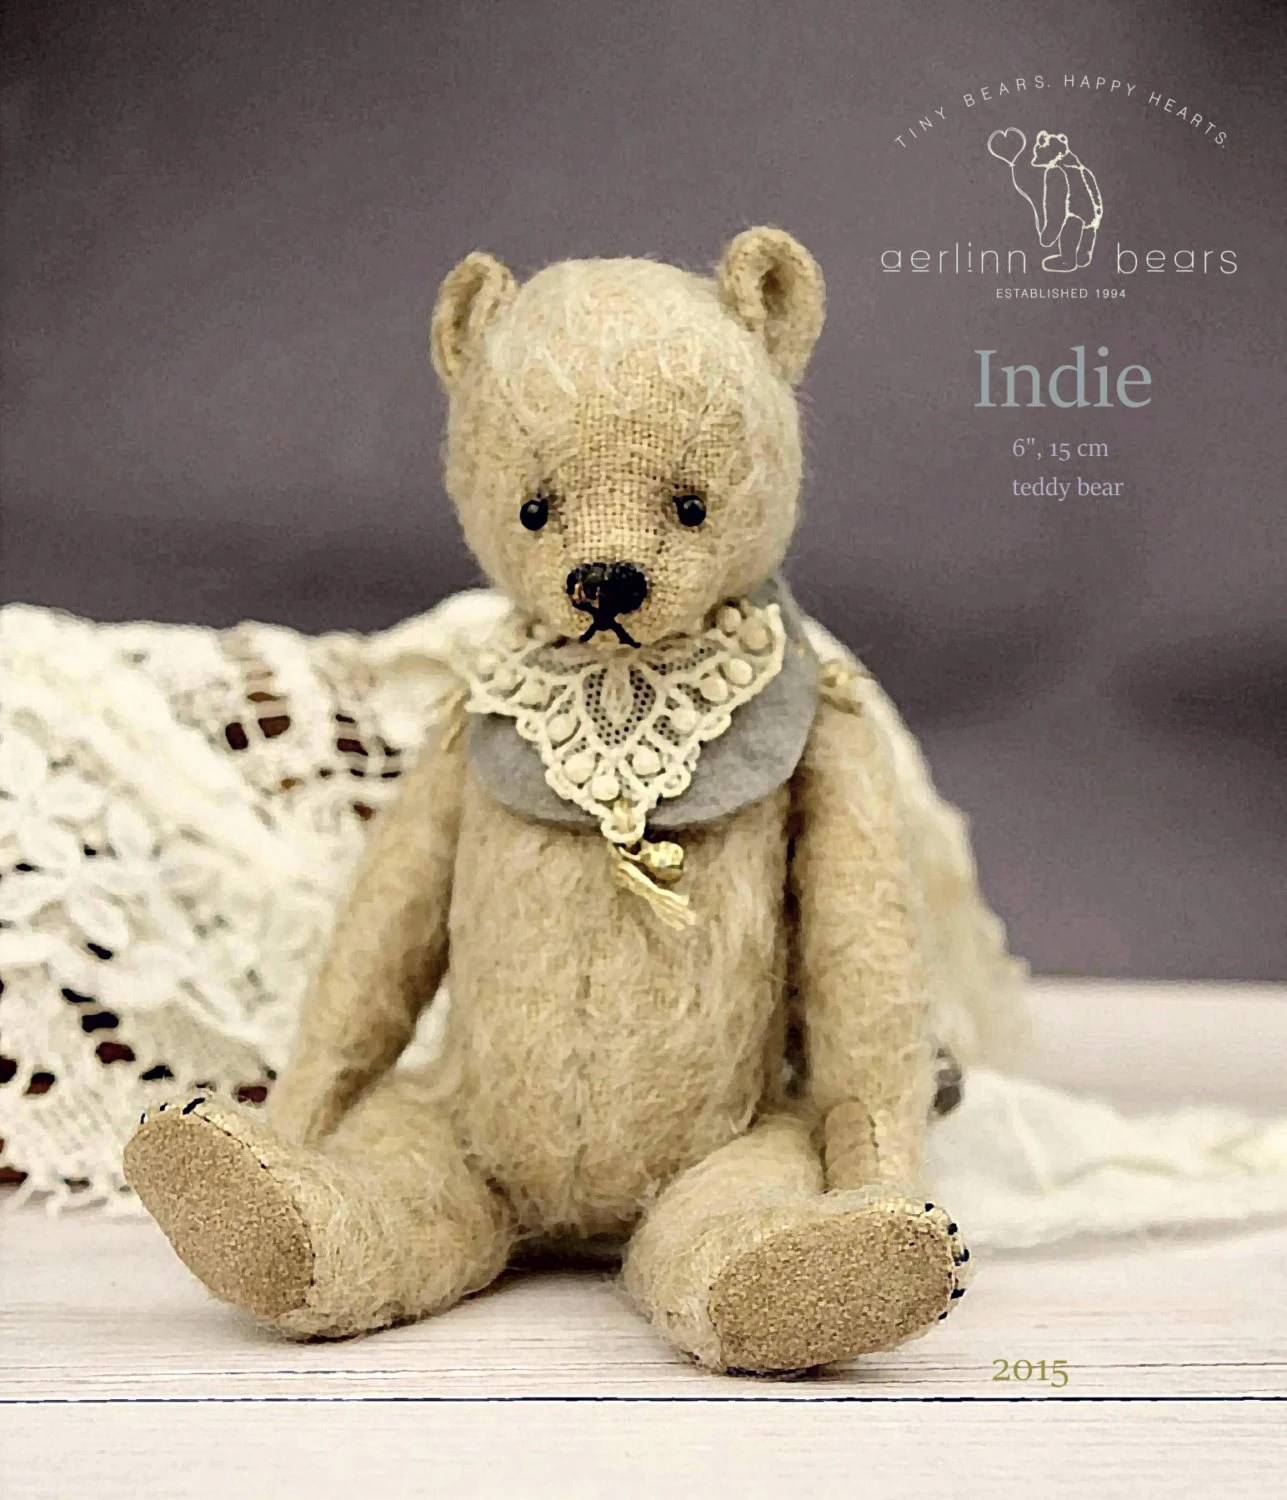 Australian Made Teddy Bears Indie 6 Pdf Artist Teddy Bear Pattern By Aerlinn Bears